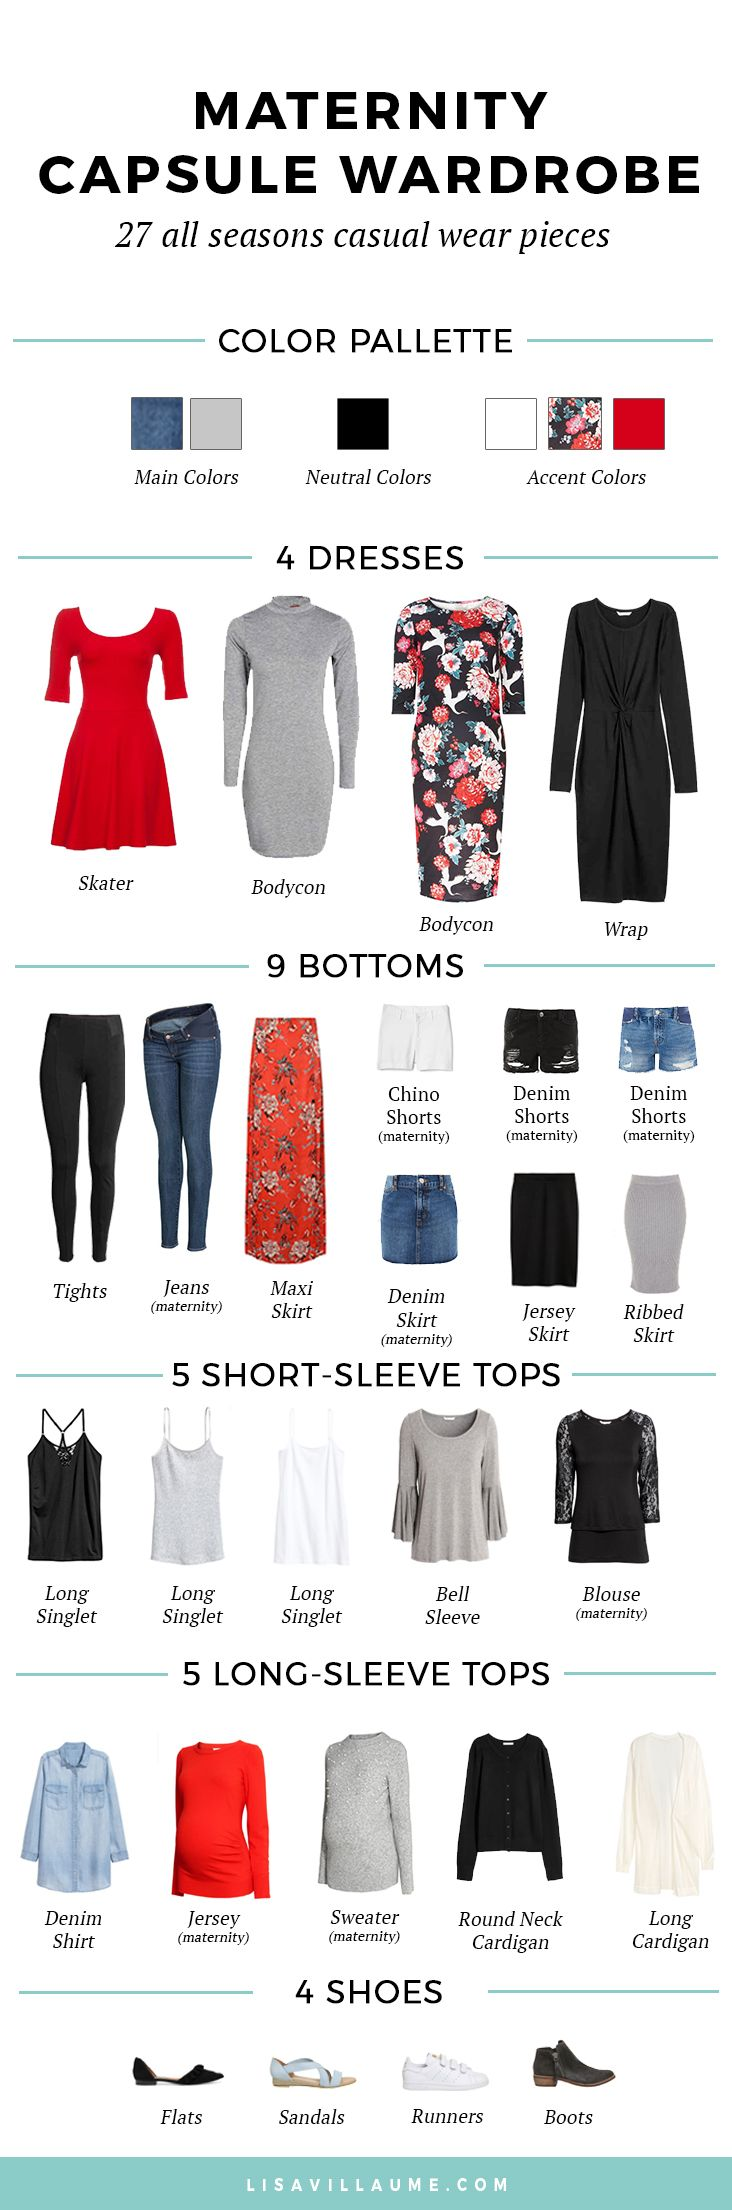 Building the perfect maternity capsule wardrobe can be a little daunting, especially with a growing belly! Here is the super easy formula I used to create the maternity capsule wardrobe.